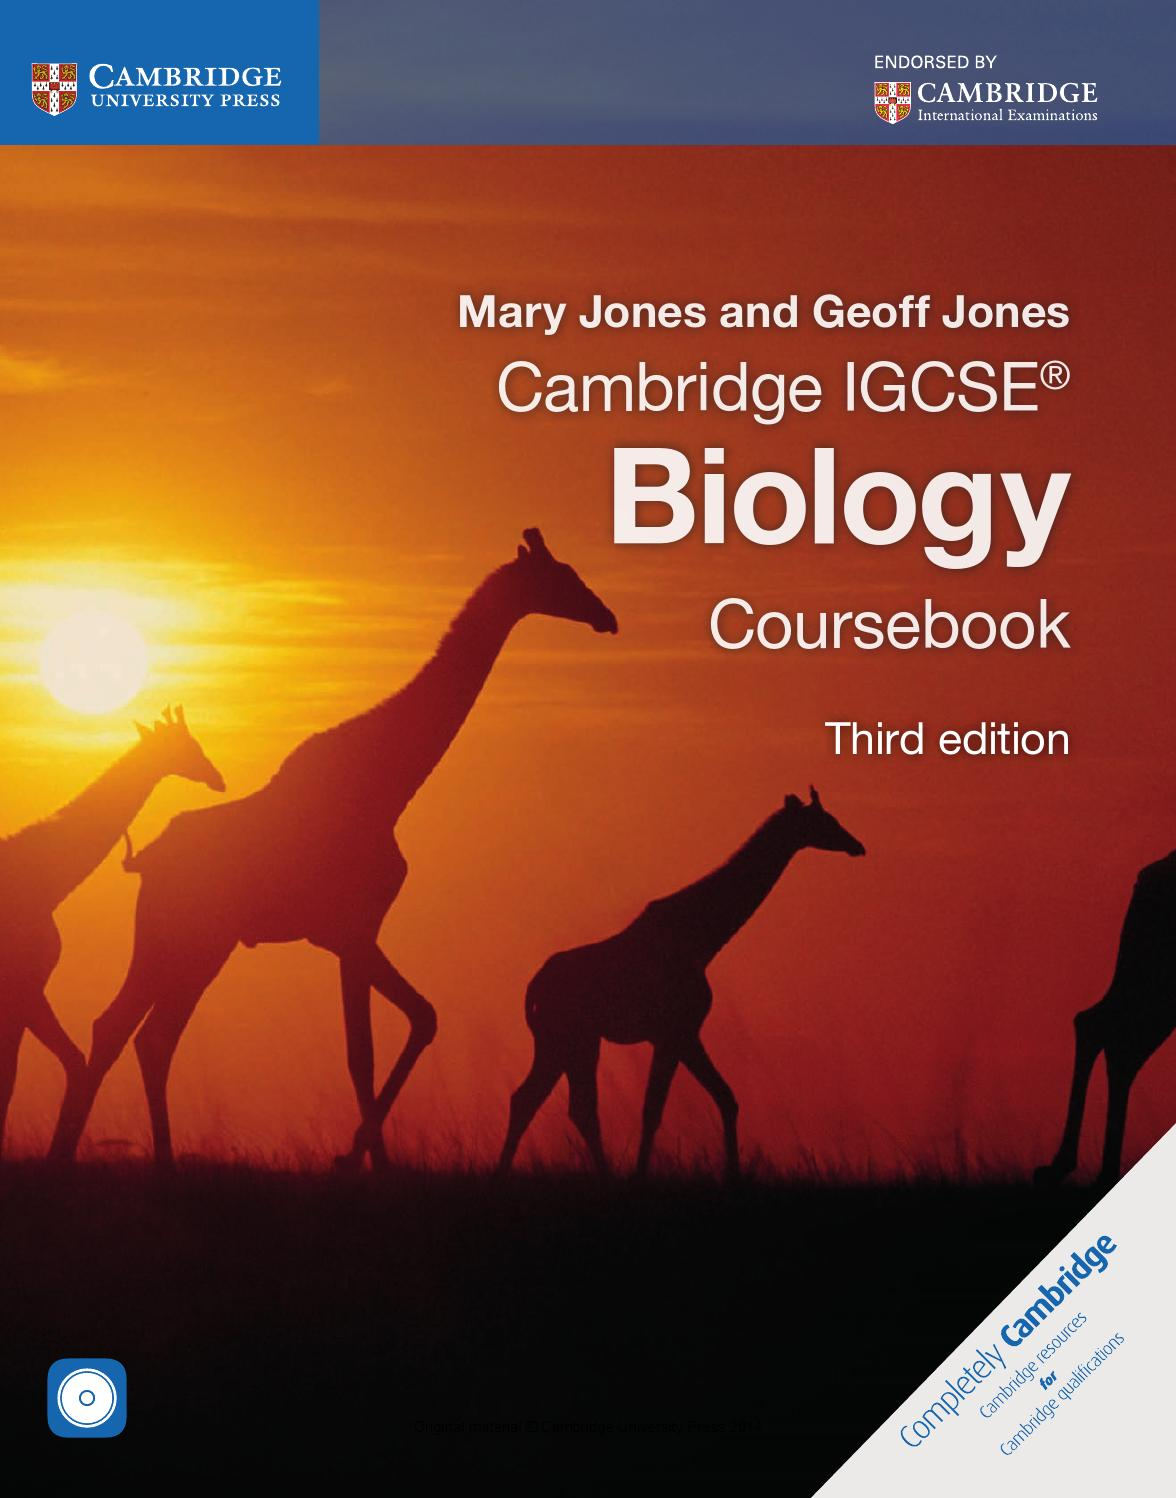 What does C.O.R.M.S. stand for in the IGCSE Biology mark scheme?